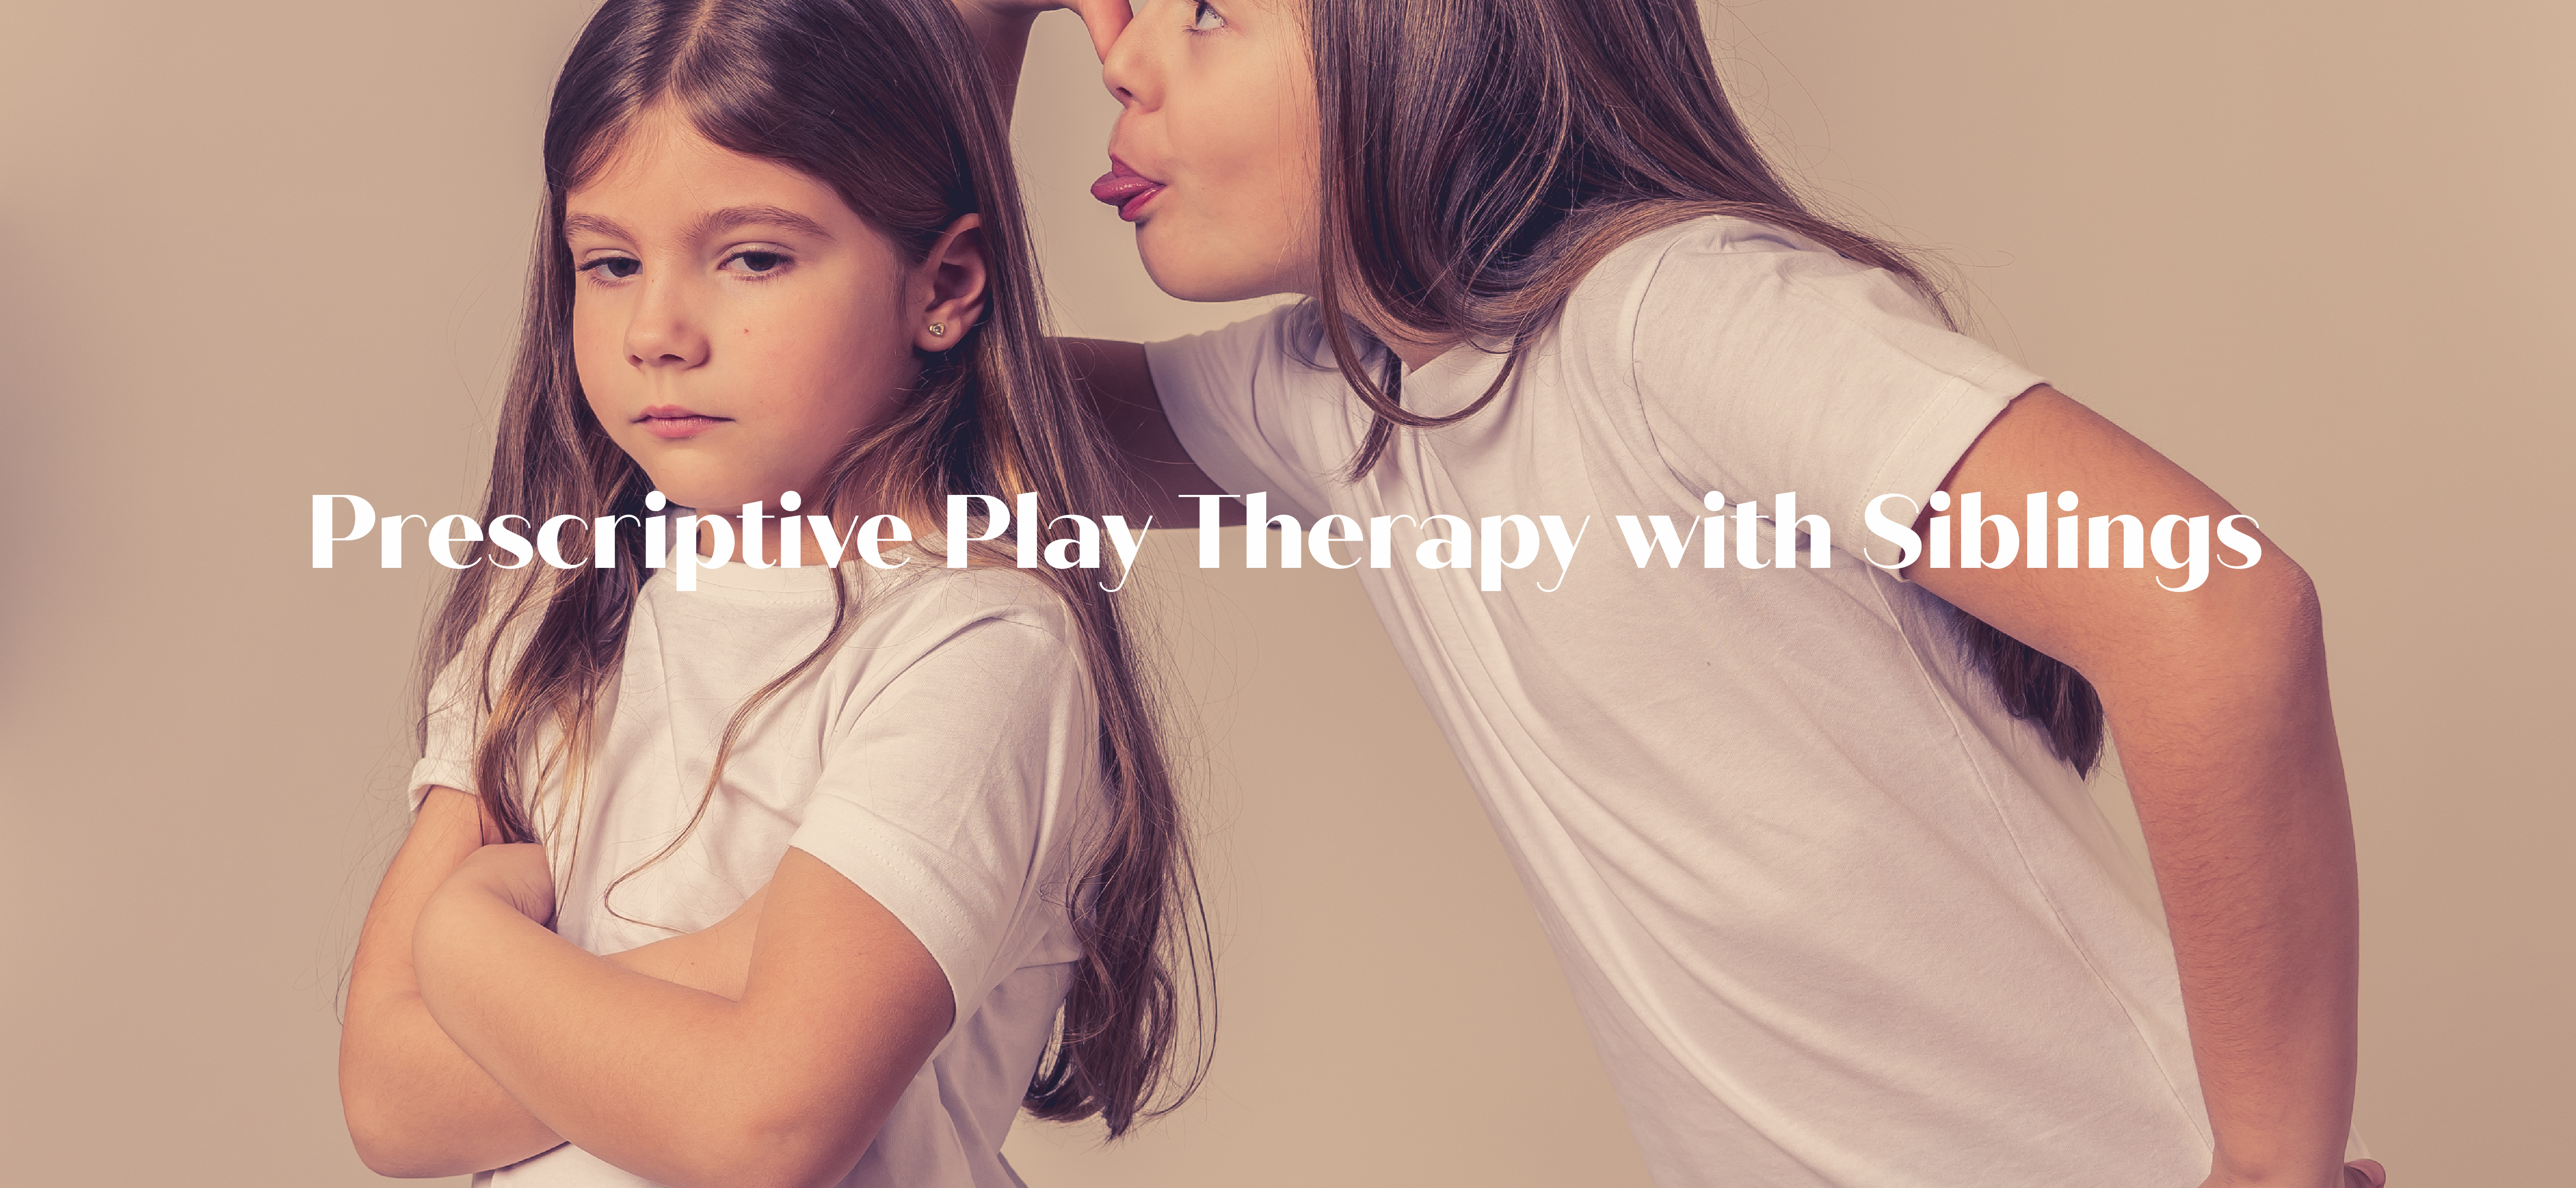 play therapy with siblings